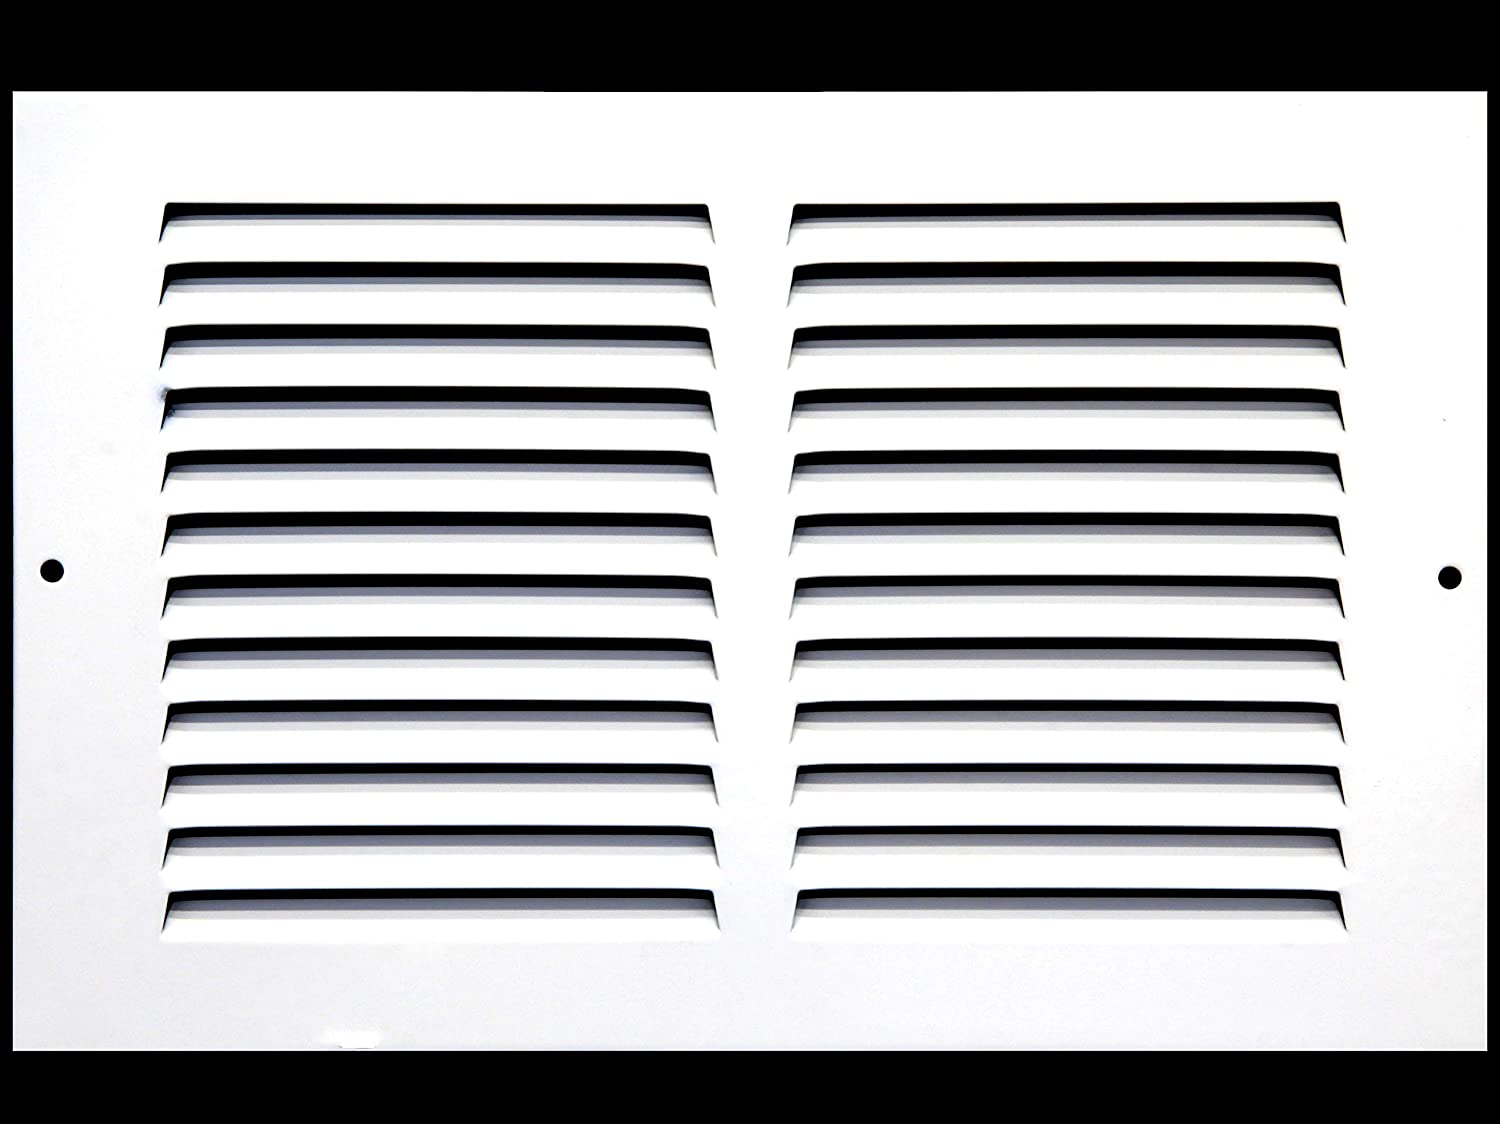 Return Air Grille 10-Inch x Over item handling or Ai 4-Inch Sidewall Ranking TOP6 Ceiling